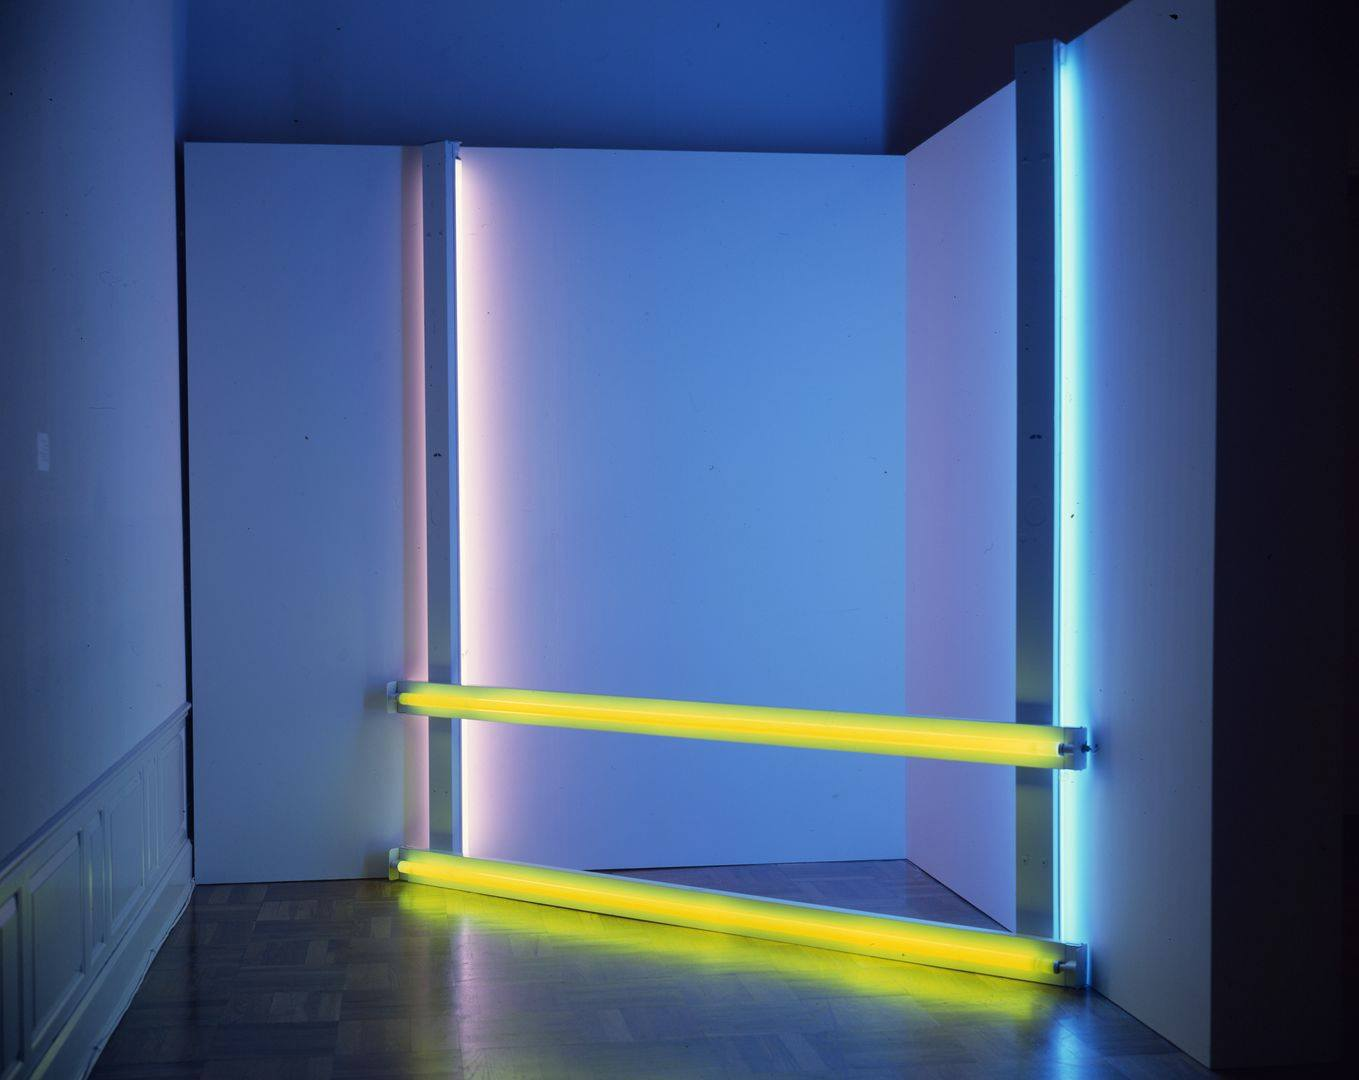 Untitled (to Donna) 2, 96 ¼ x 96, fluorescent light. An installation of fluorescent lights positioned in a corner consisting of two bright yellow lights running horizontally at floor and knee level and two fluorescent lights running horizontally at each end with the light component facing the wall. The horizontal lights are bright blue at the right and mauve at the left. All four lights cast their colors on the corner walls and floor.